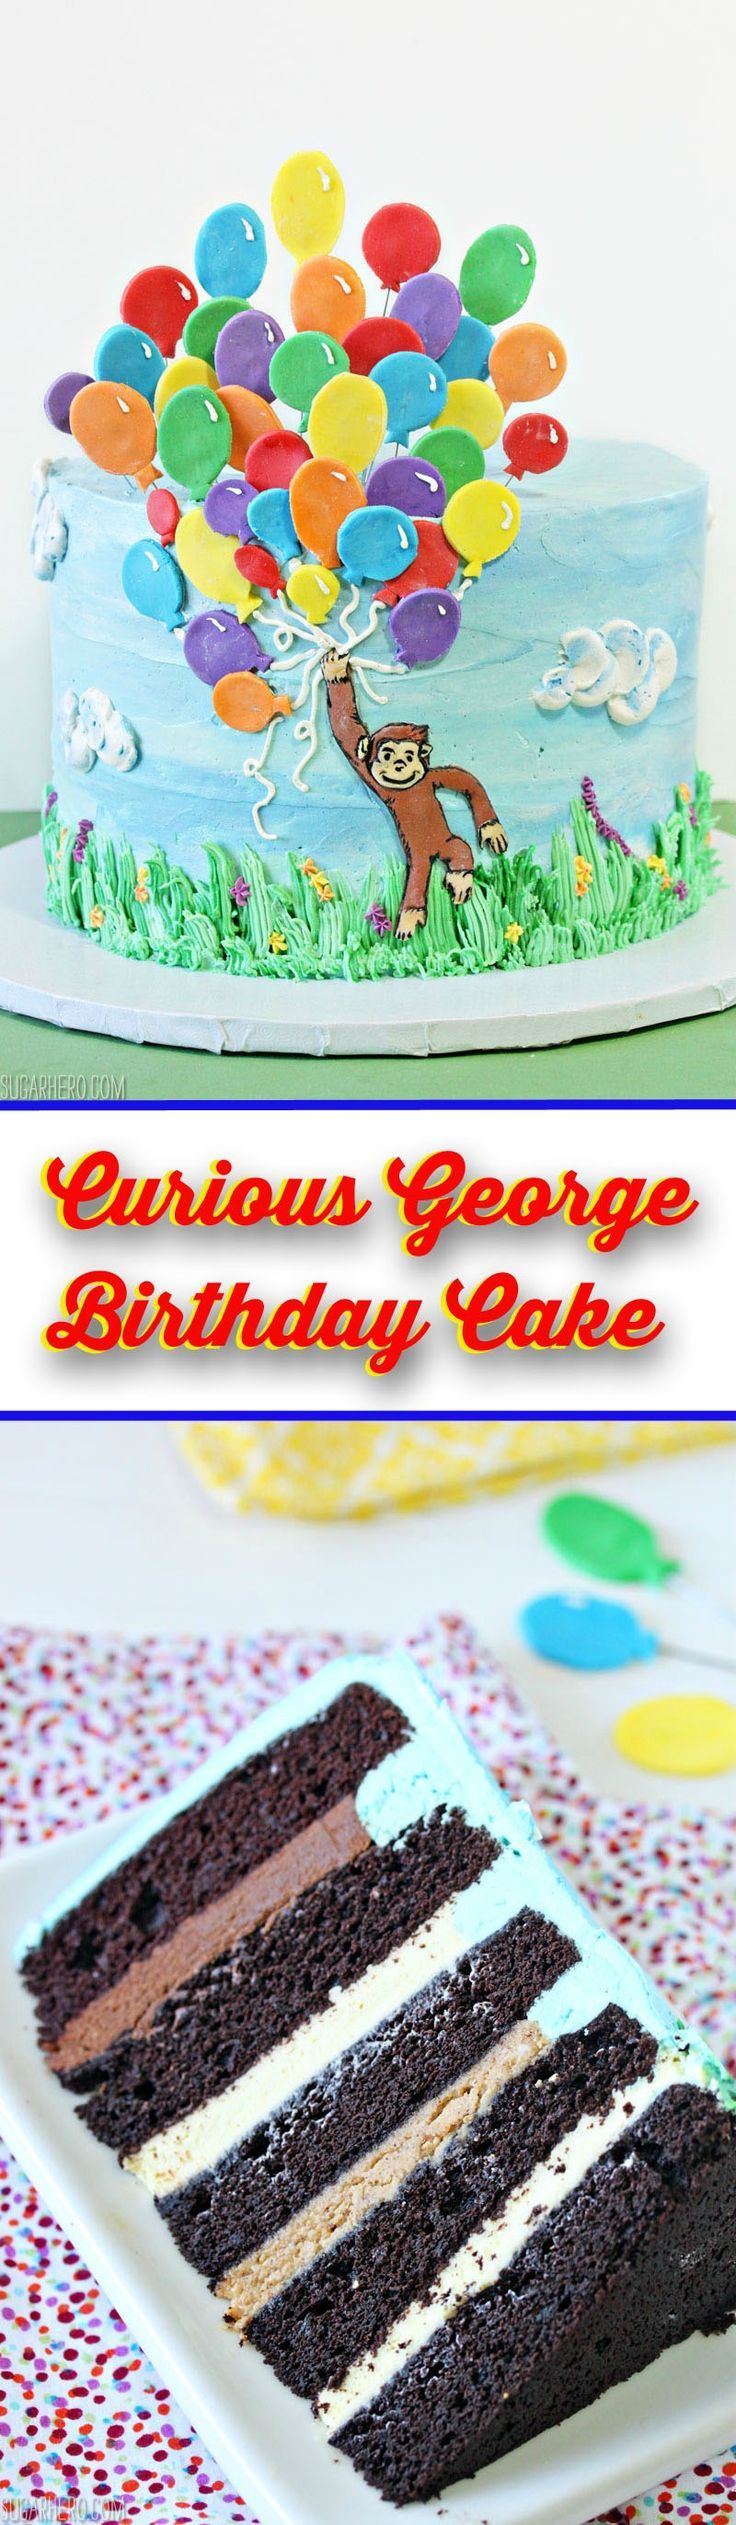 41 Best Curious George Party Ideas Images On Pinterest Curious